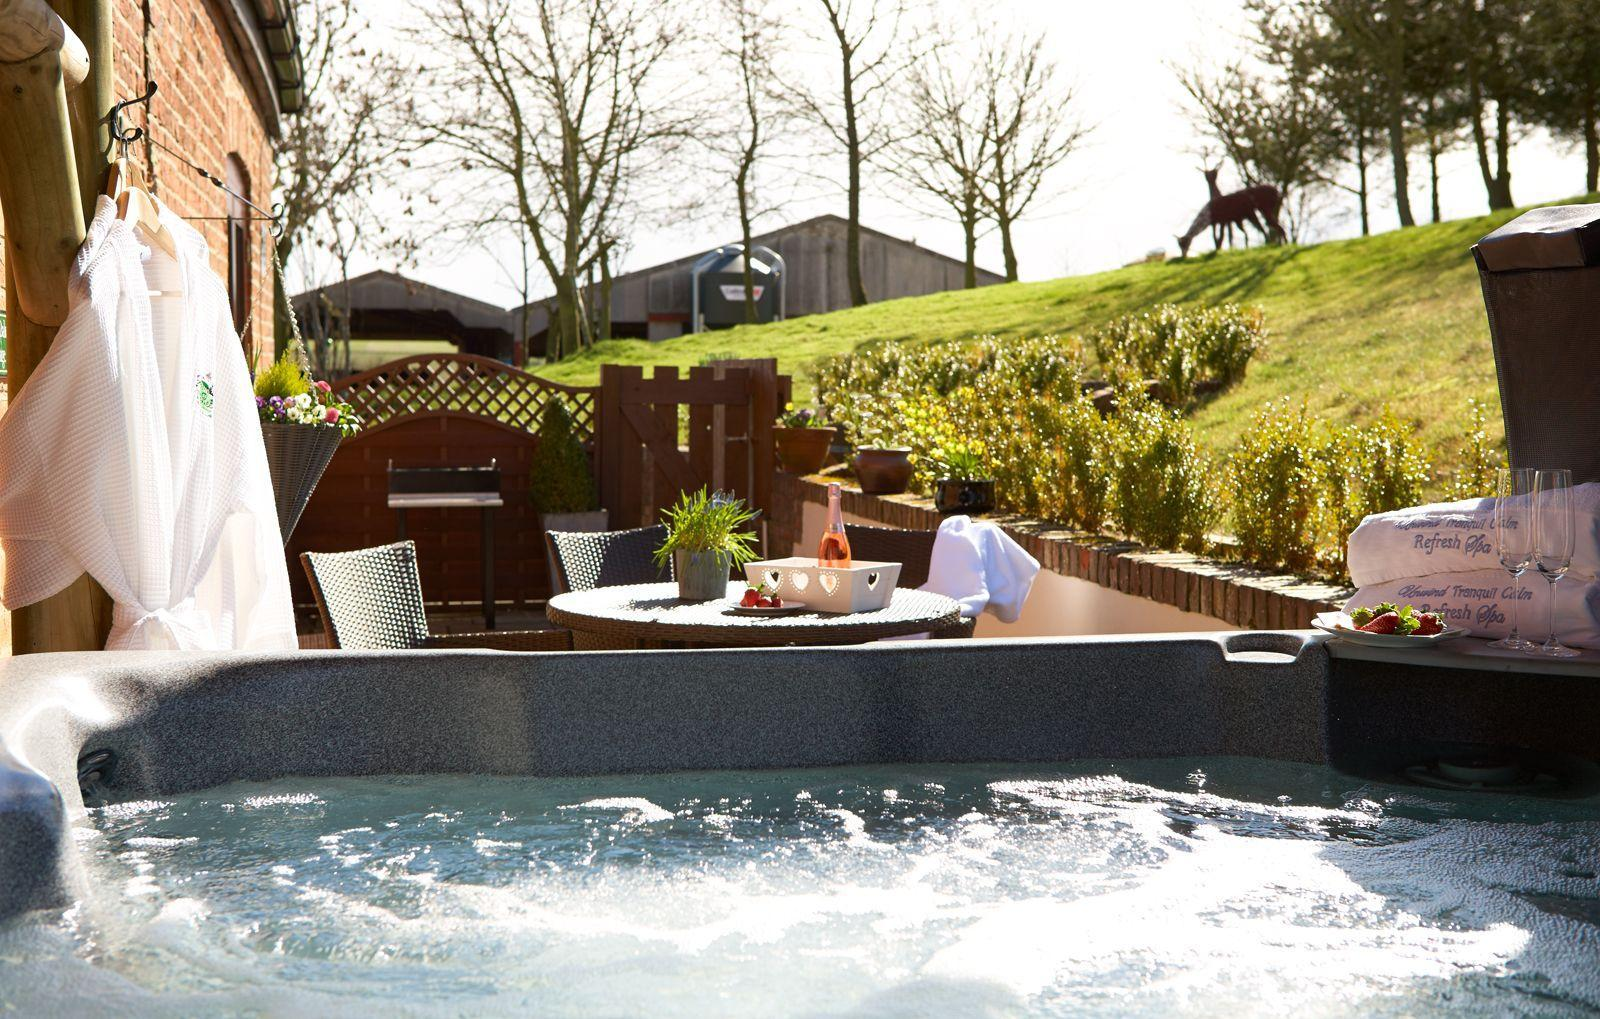 Enjoy the Jacuzzi in our cottages!